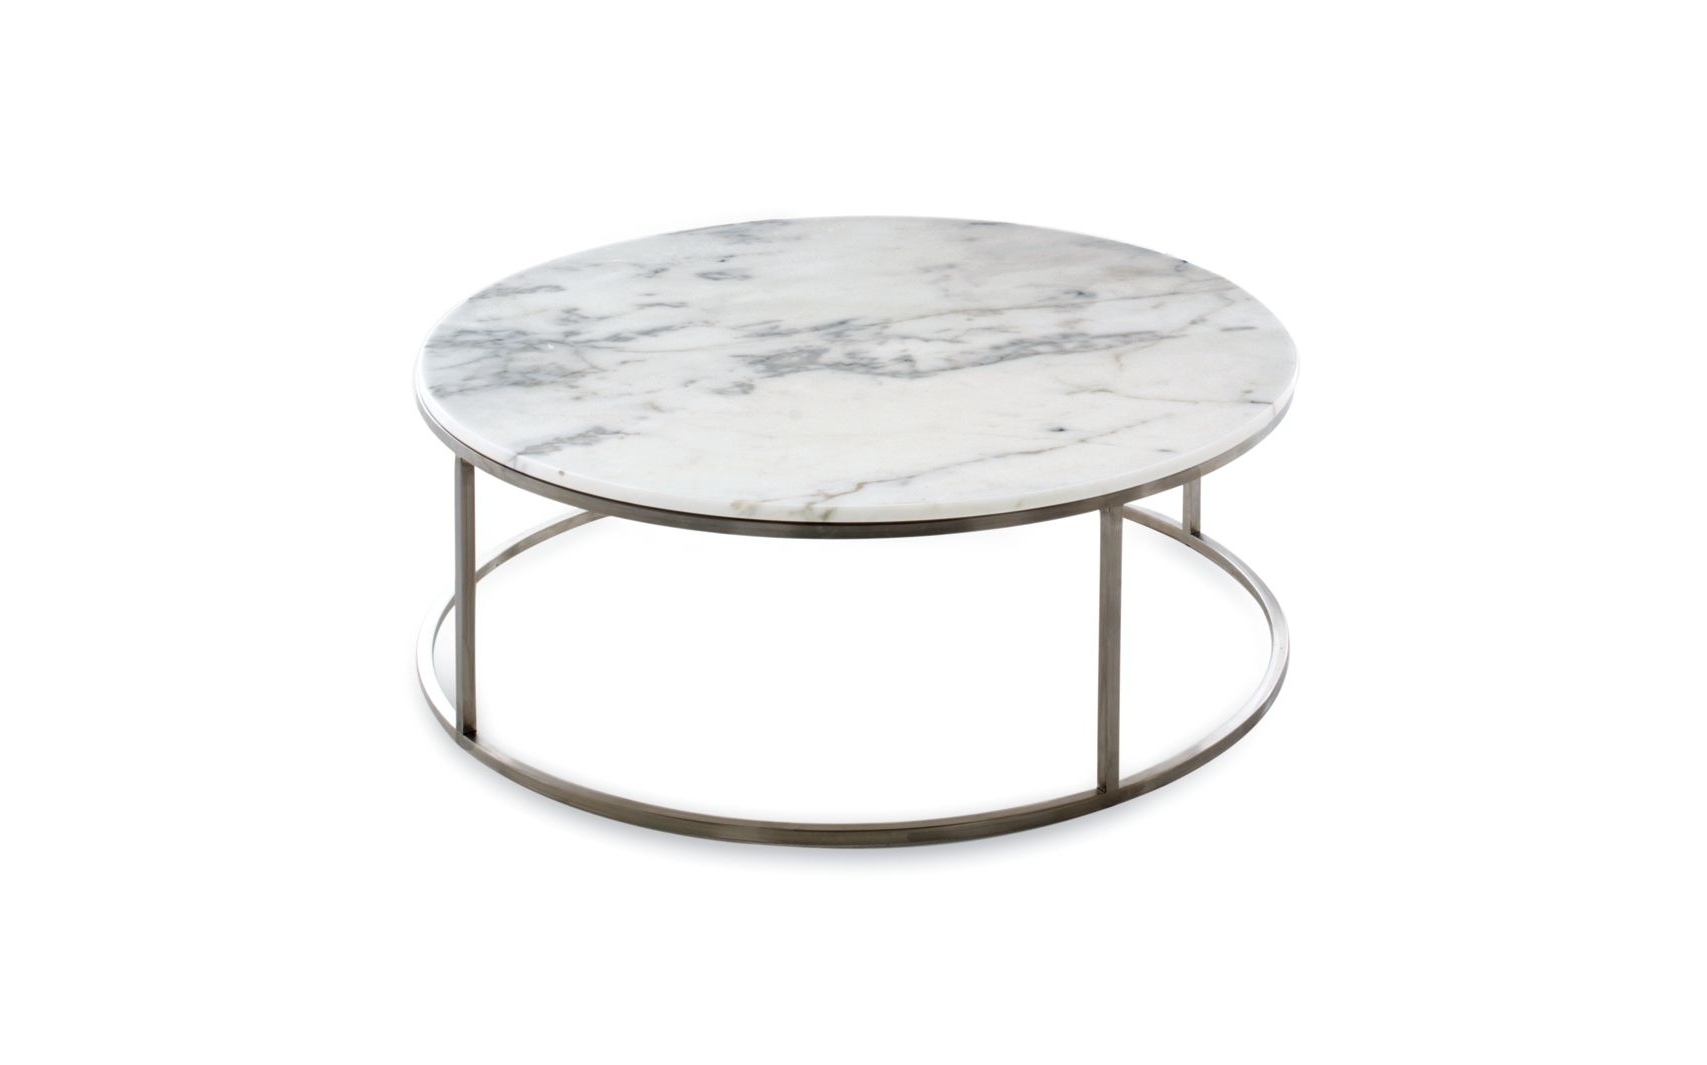 Hommeschooled Intended For Current Smart Round Marble Top Coffee Tables (View 11 of 20)